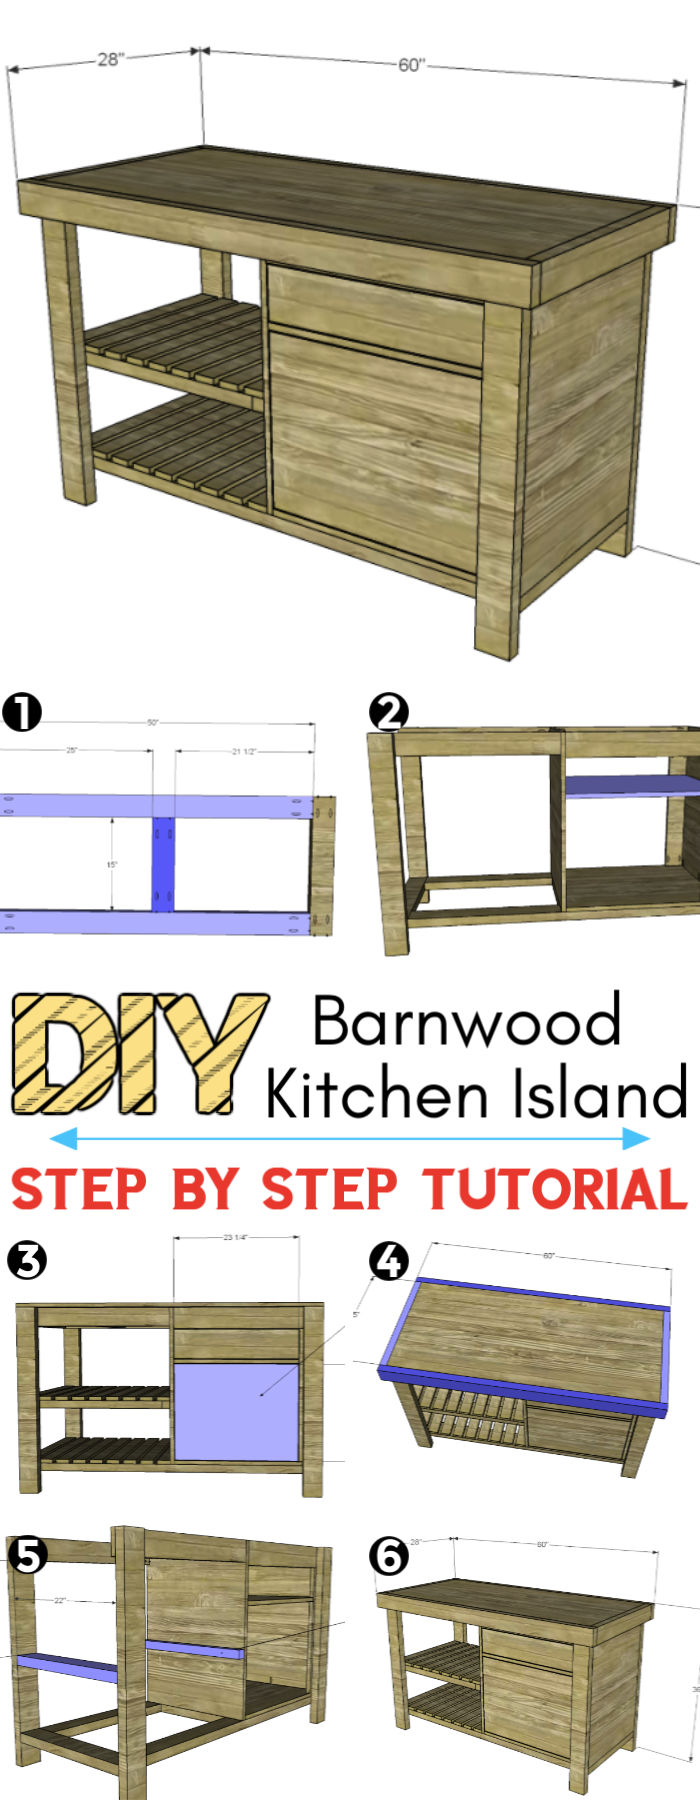 Build a New American Barnwood Kitchen Island